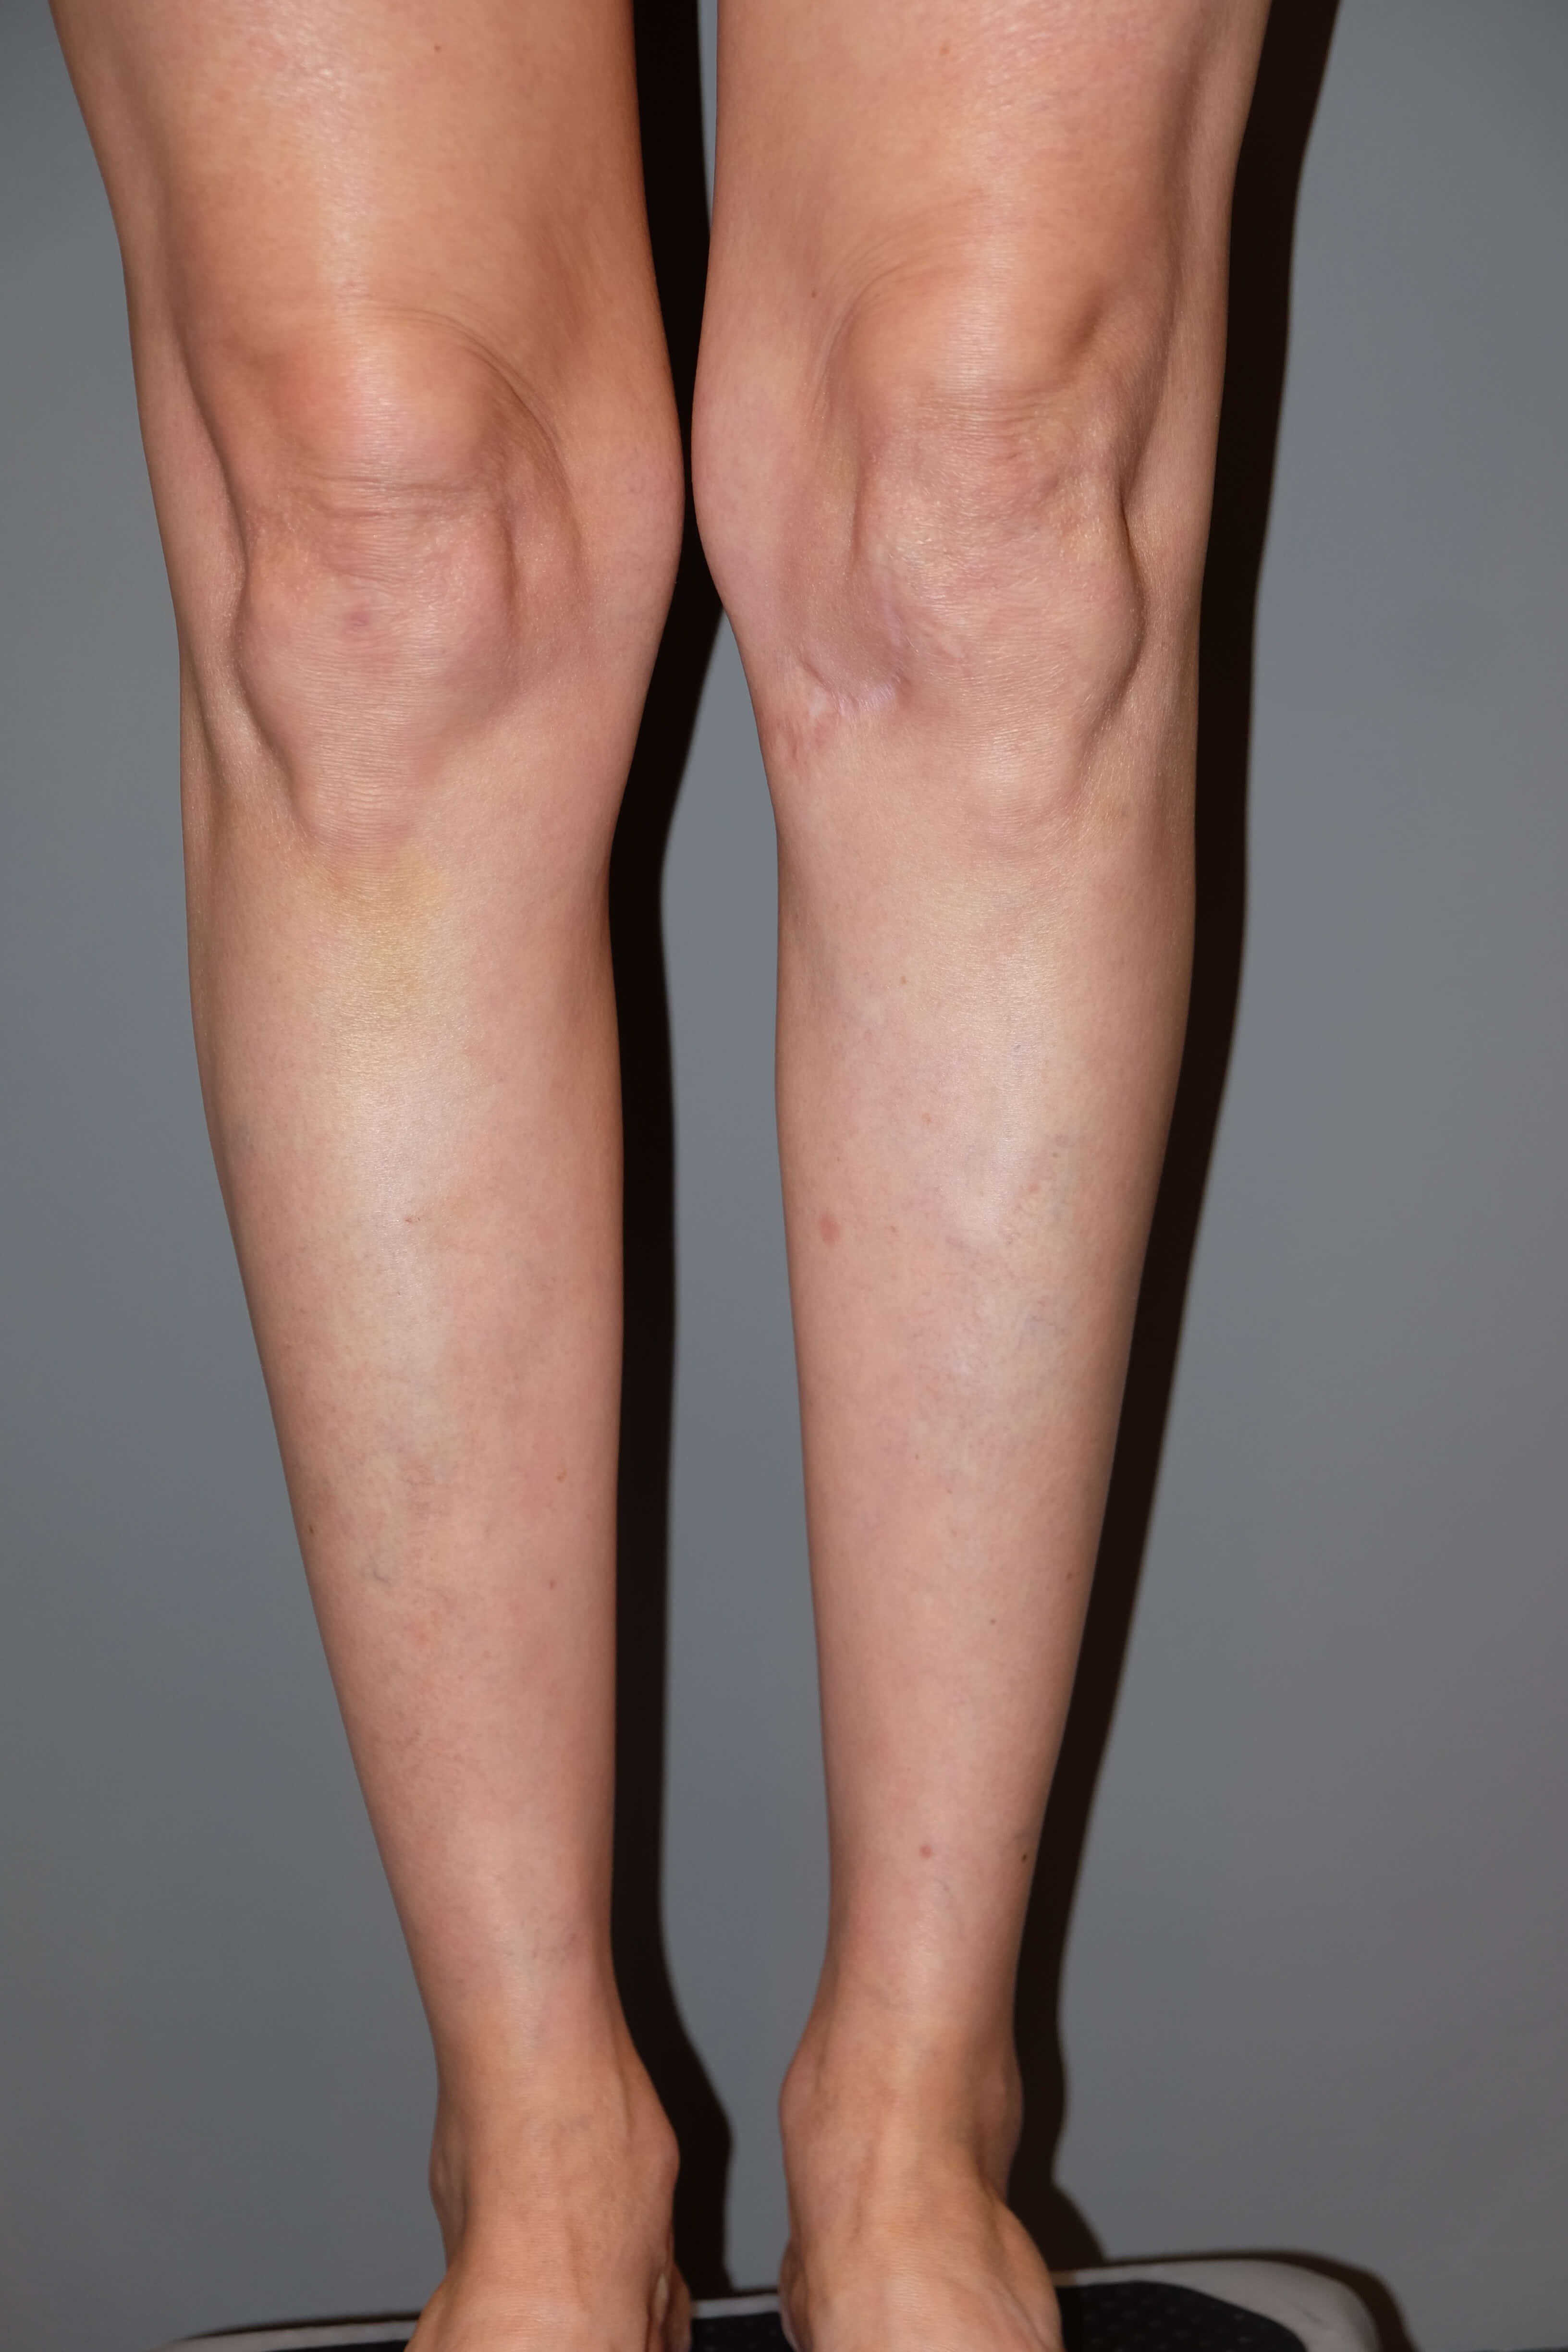 Calf Implants Before